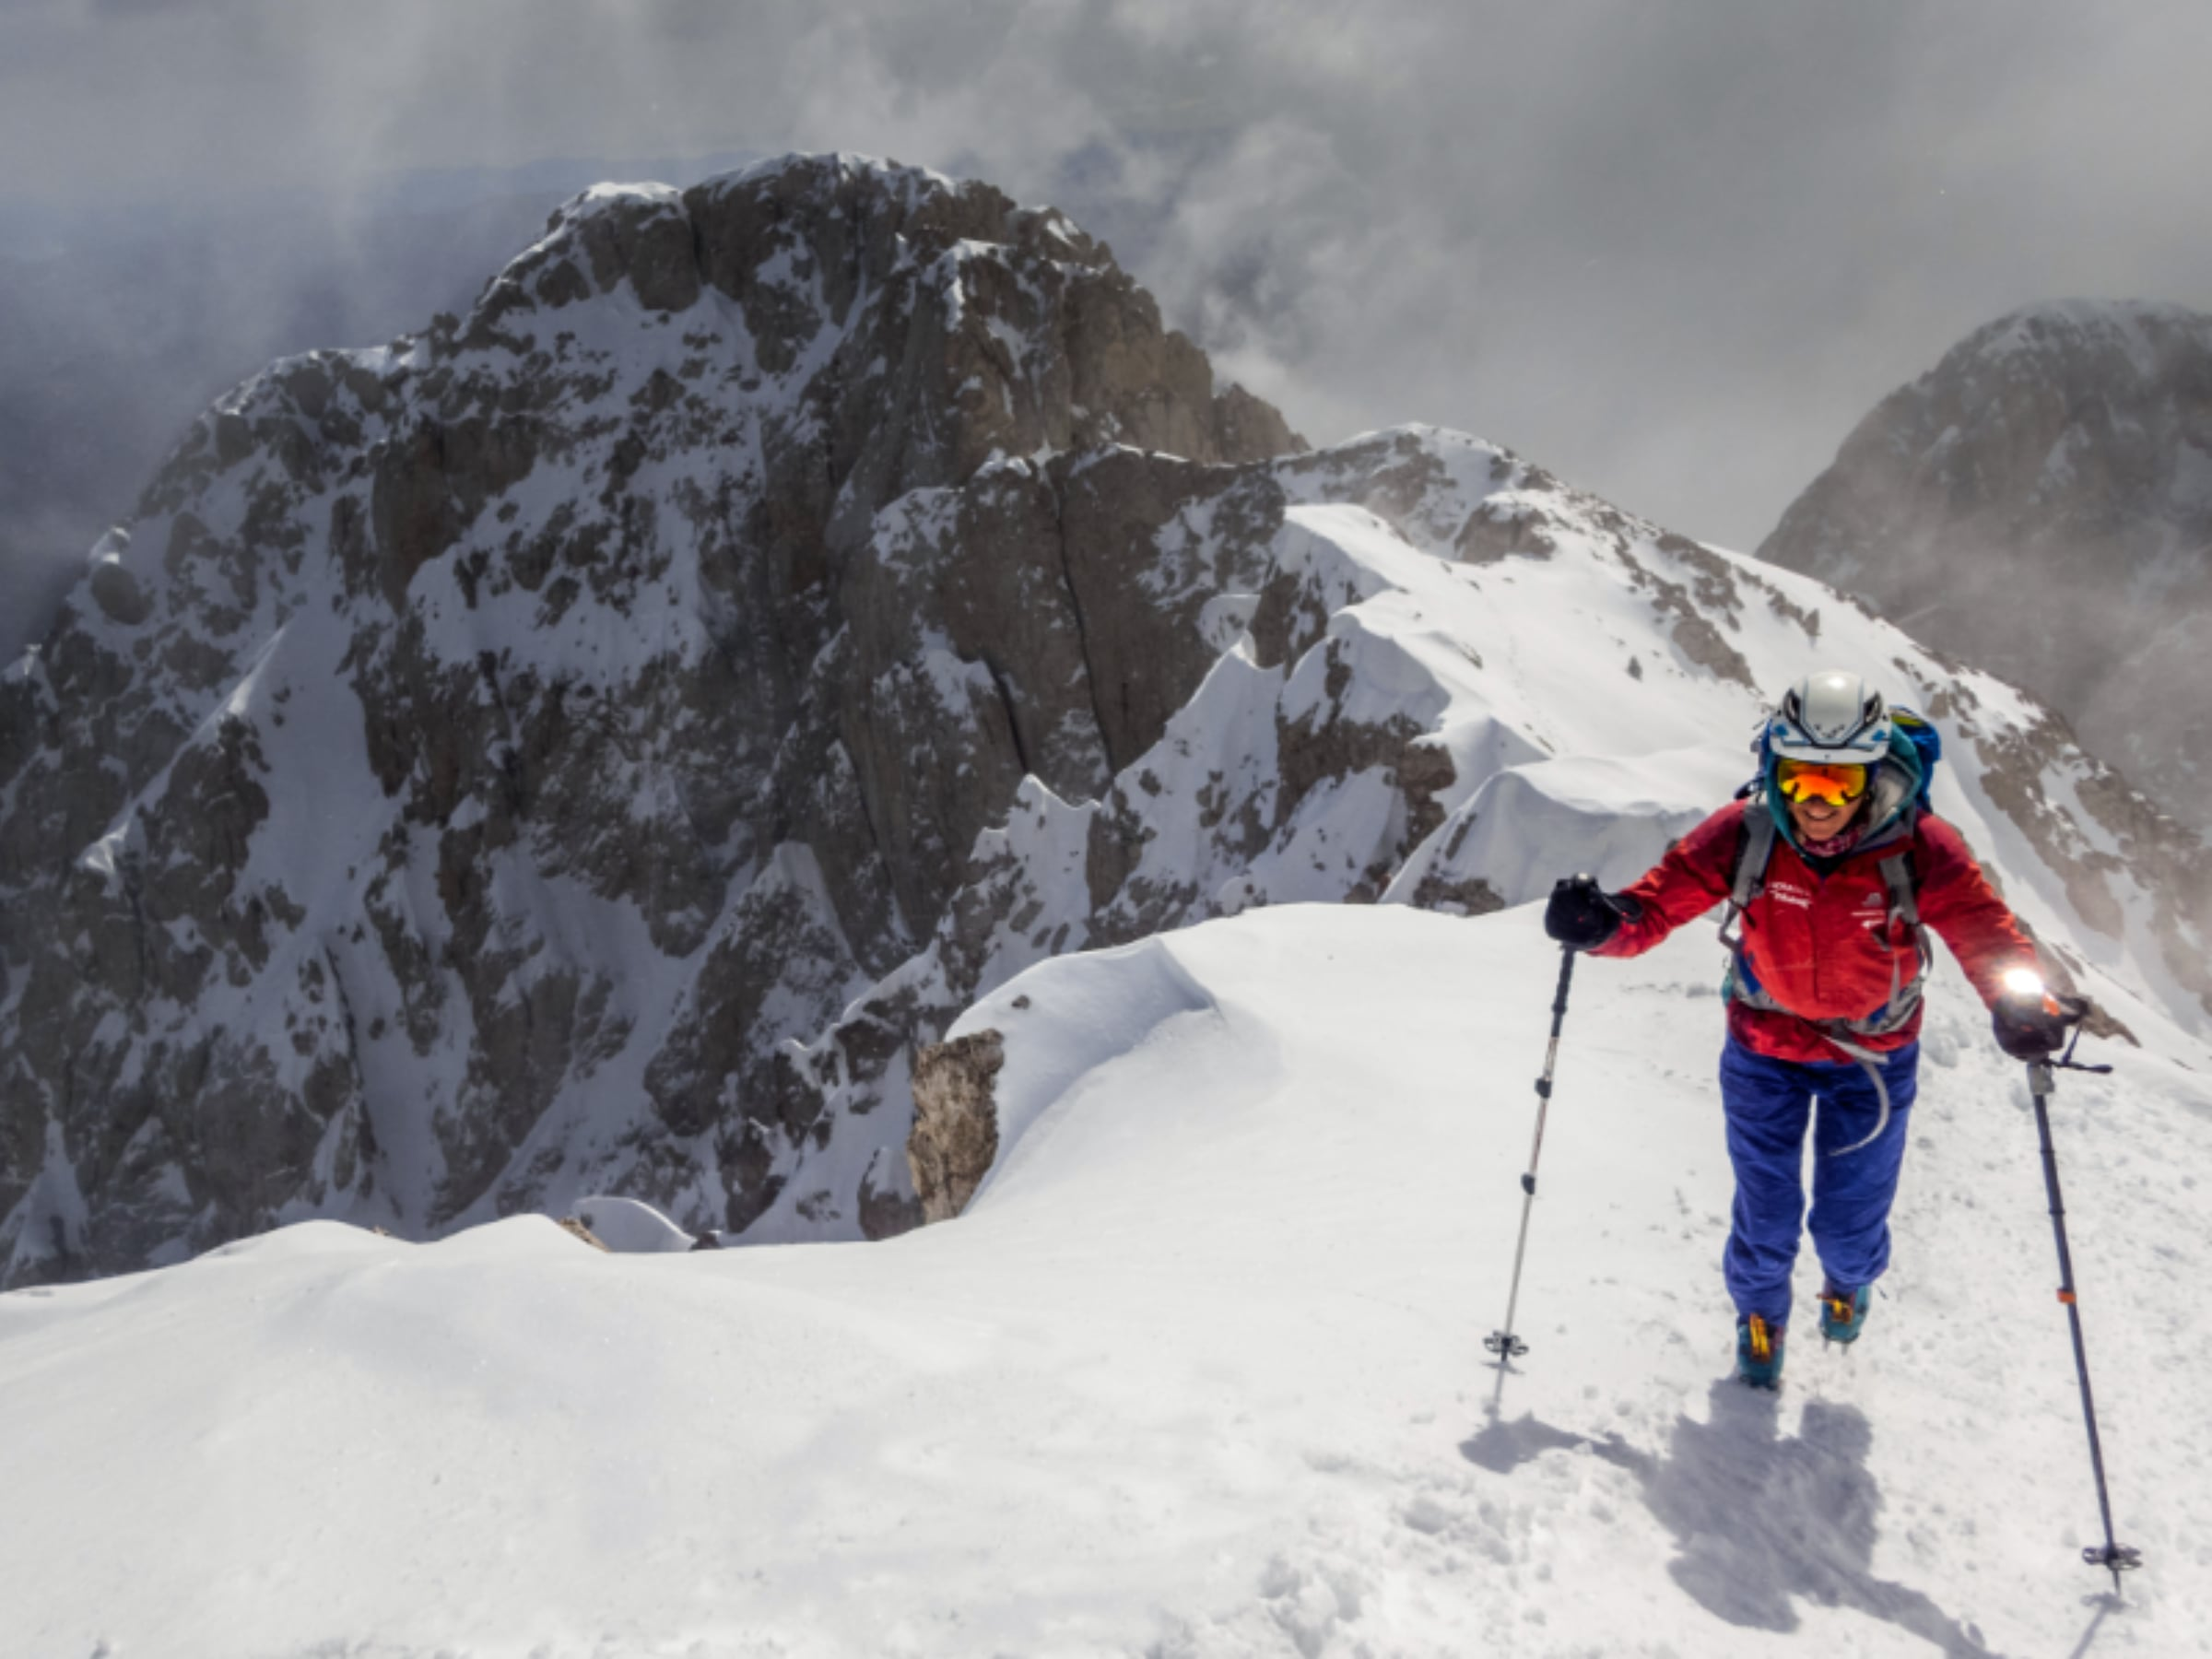 Cathy on Pedraforca in winter